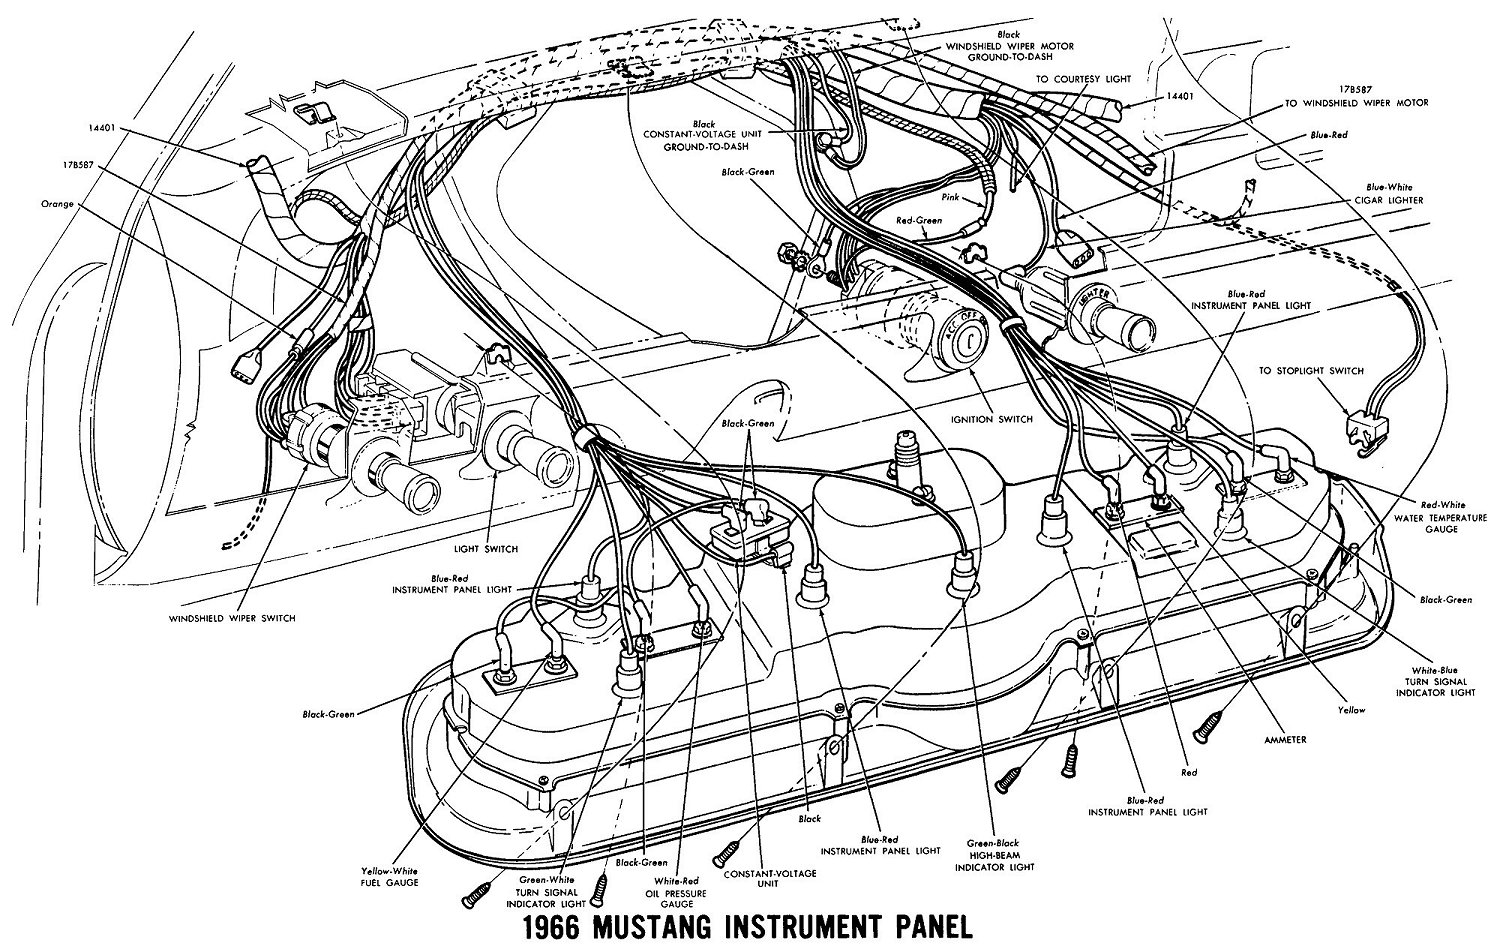 66instr 1966 mustang wiring diagrams average joe restoration fender mustang wiring diagram at soozxer.org